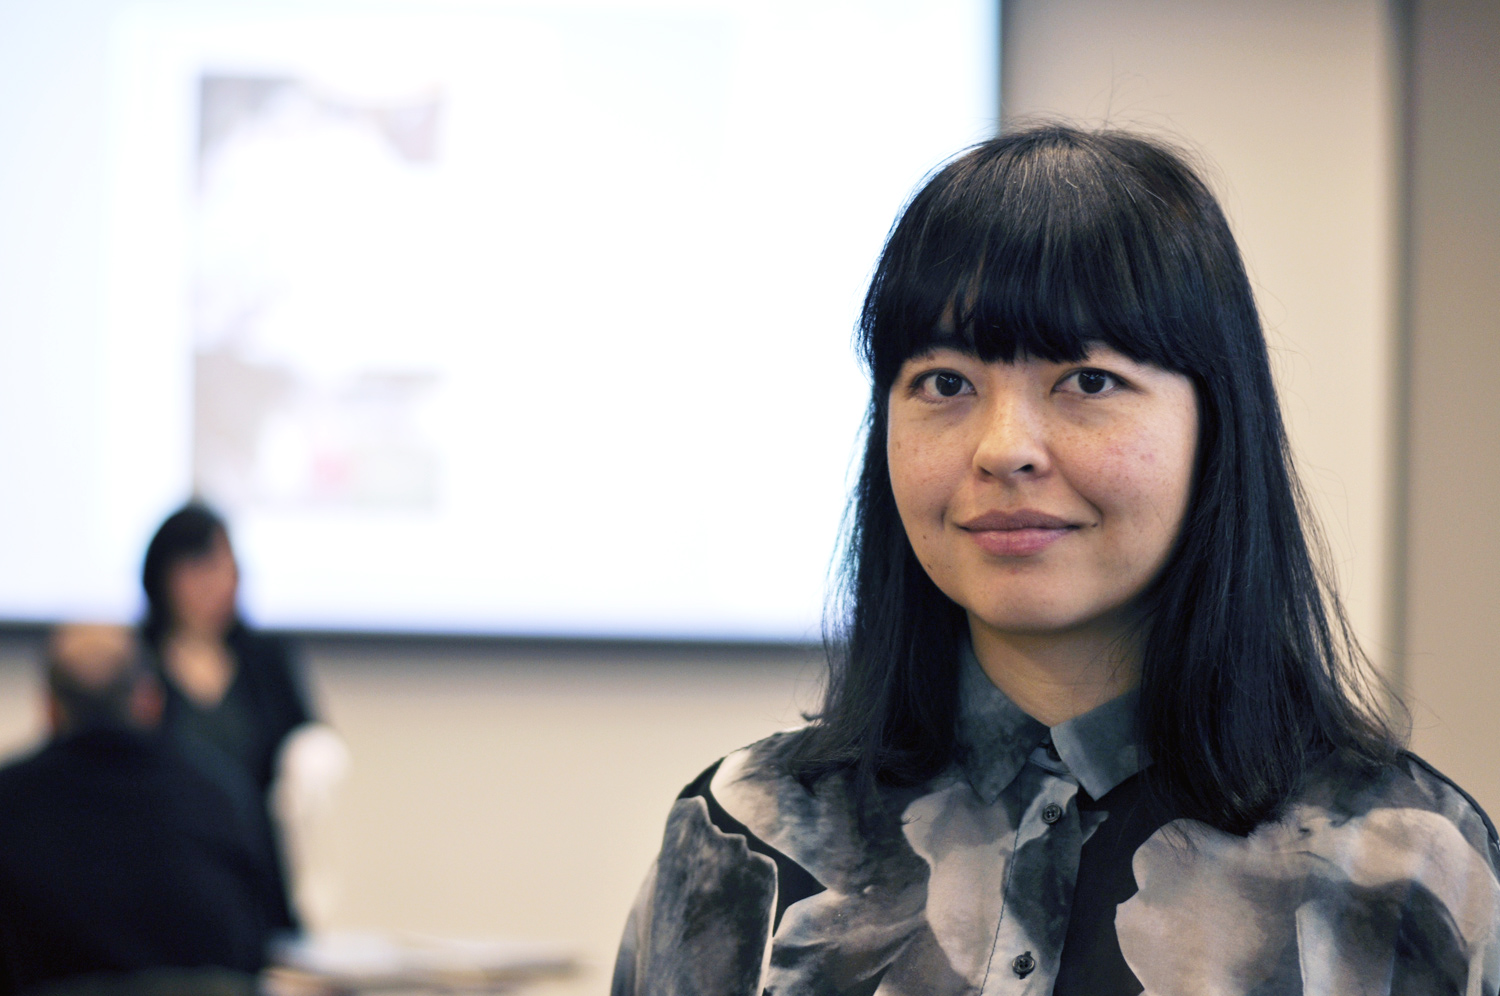 """""""it puts the individual in the social context. Somehow being engaged with friends and the environment, and the clothes that they are wearing and the type of activities they were doing talk a bit more about the social fabric than just one's individual perspective in a diary. It helps to anchor people in the ordinary,"""" Nguyen said at the scanning workshop on January 18th."""